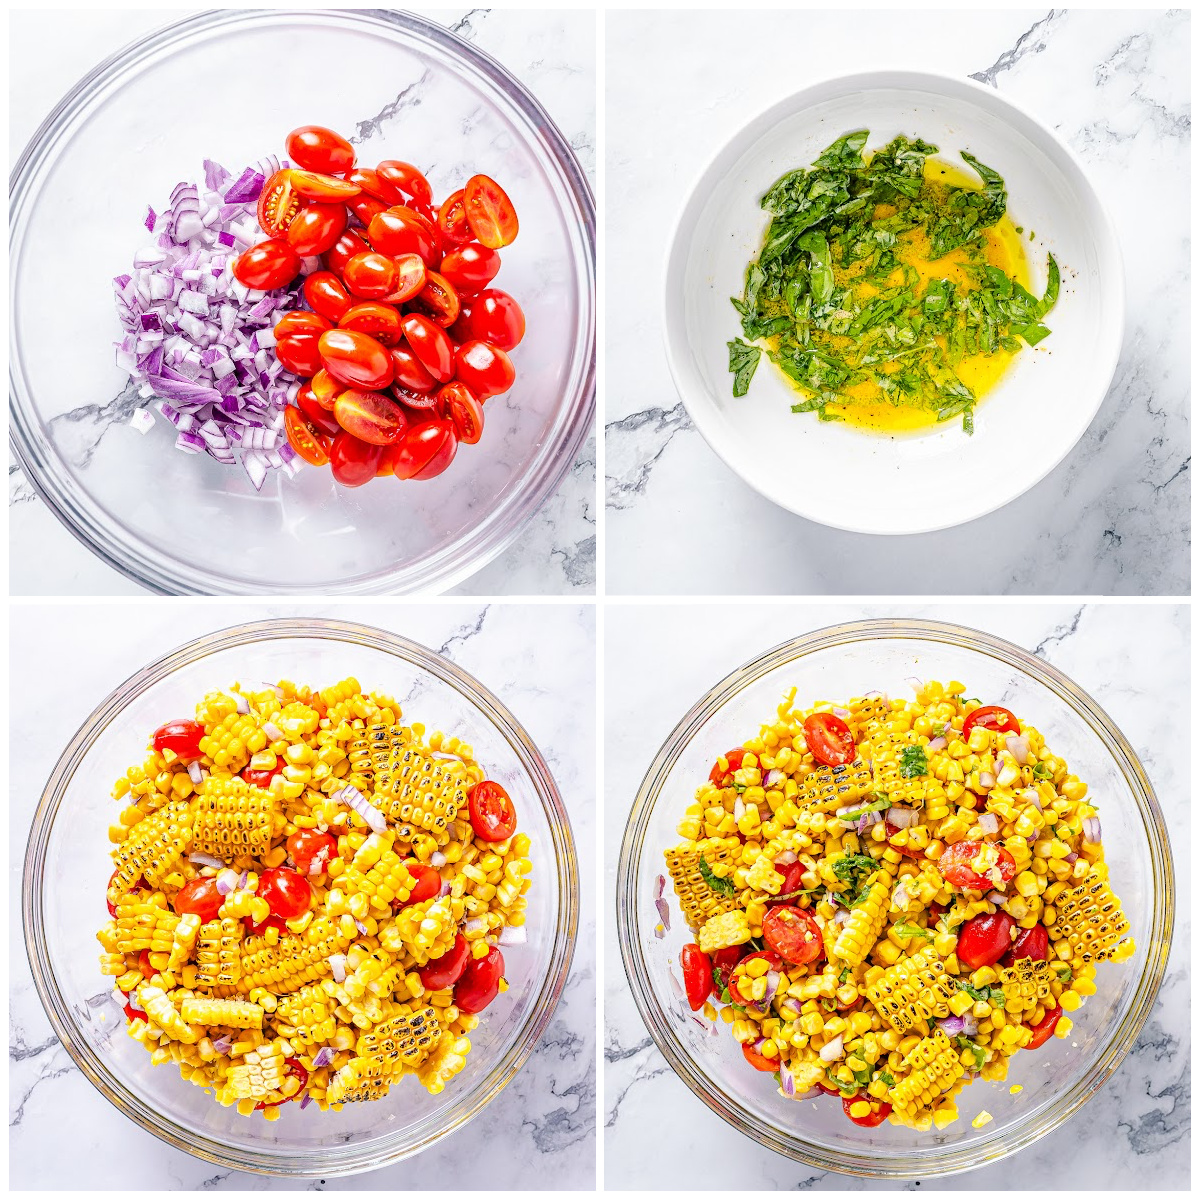 Step by step photos on how to make Corn and Tomato Salad